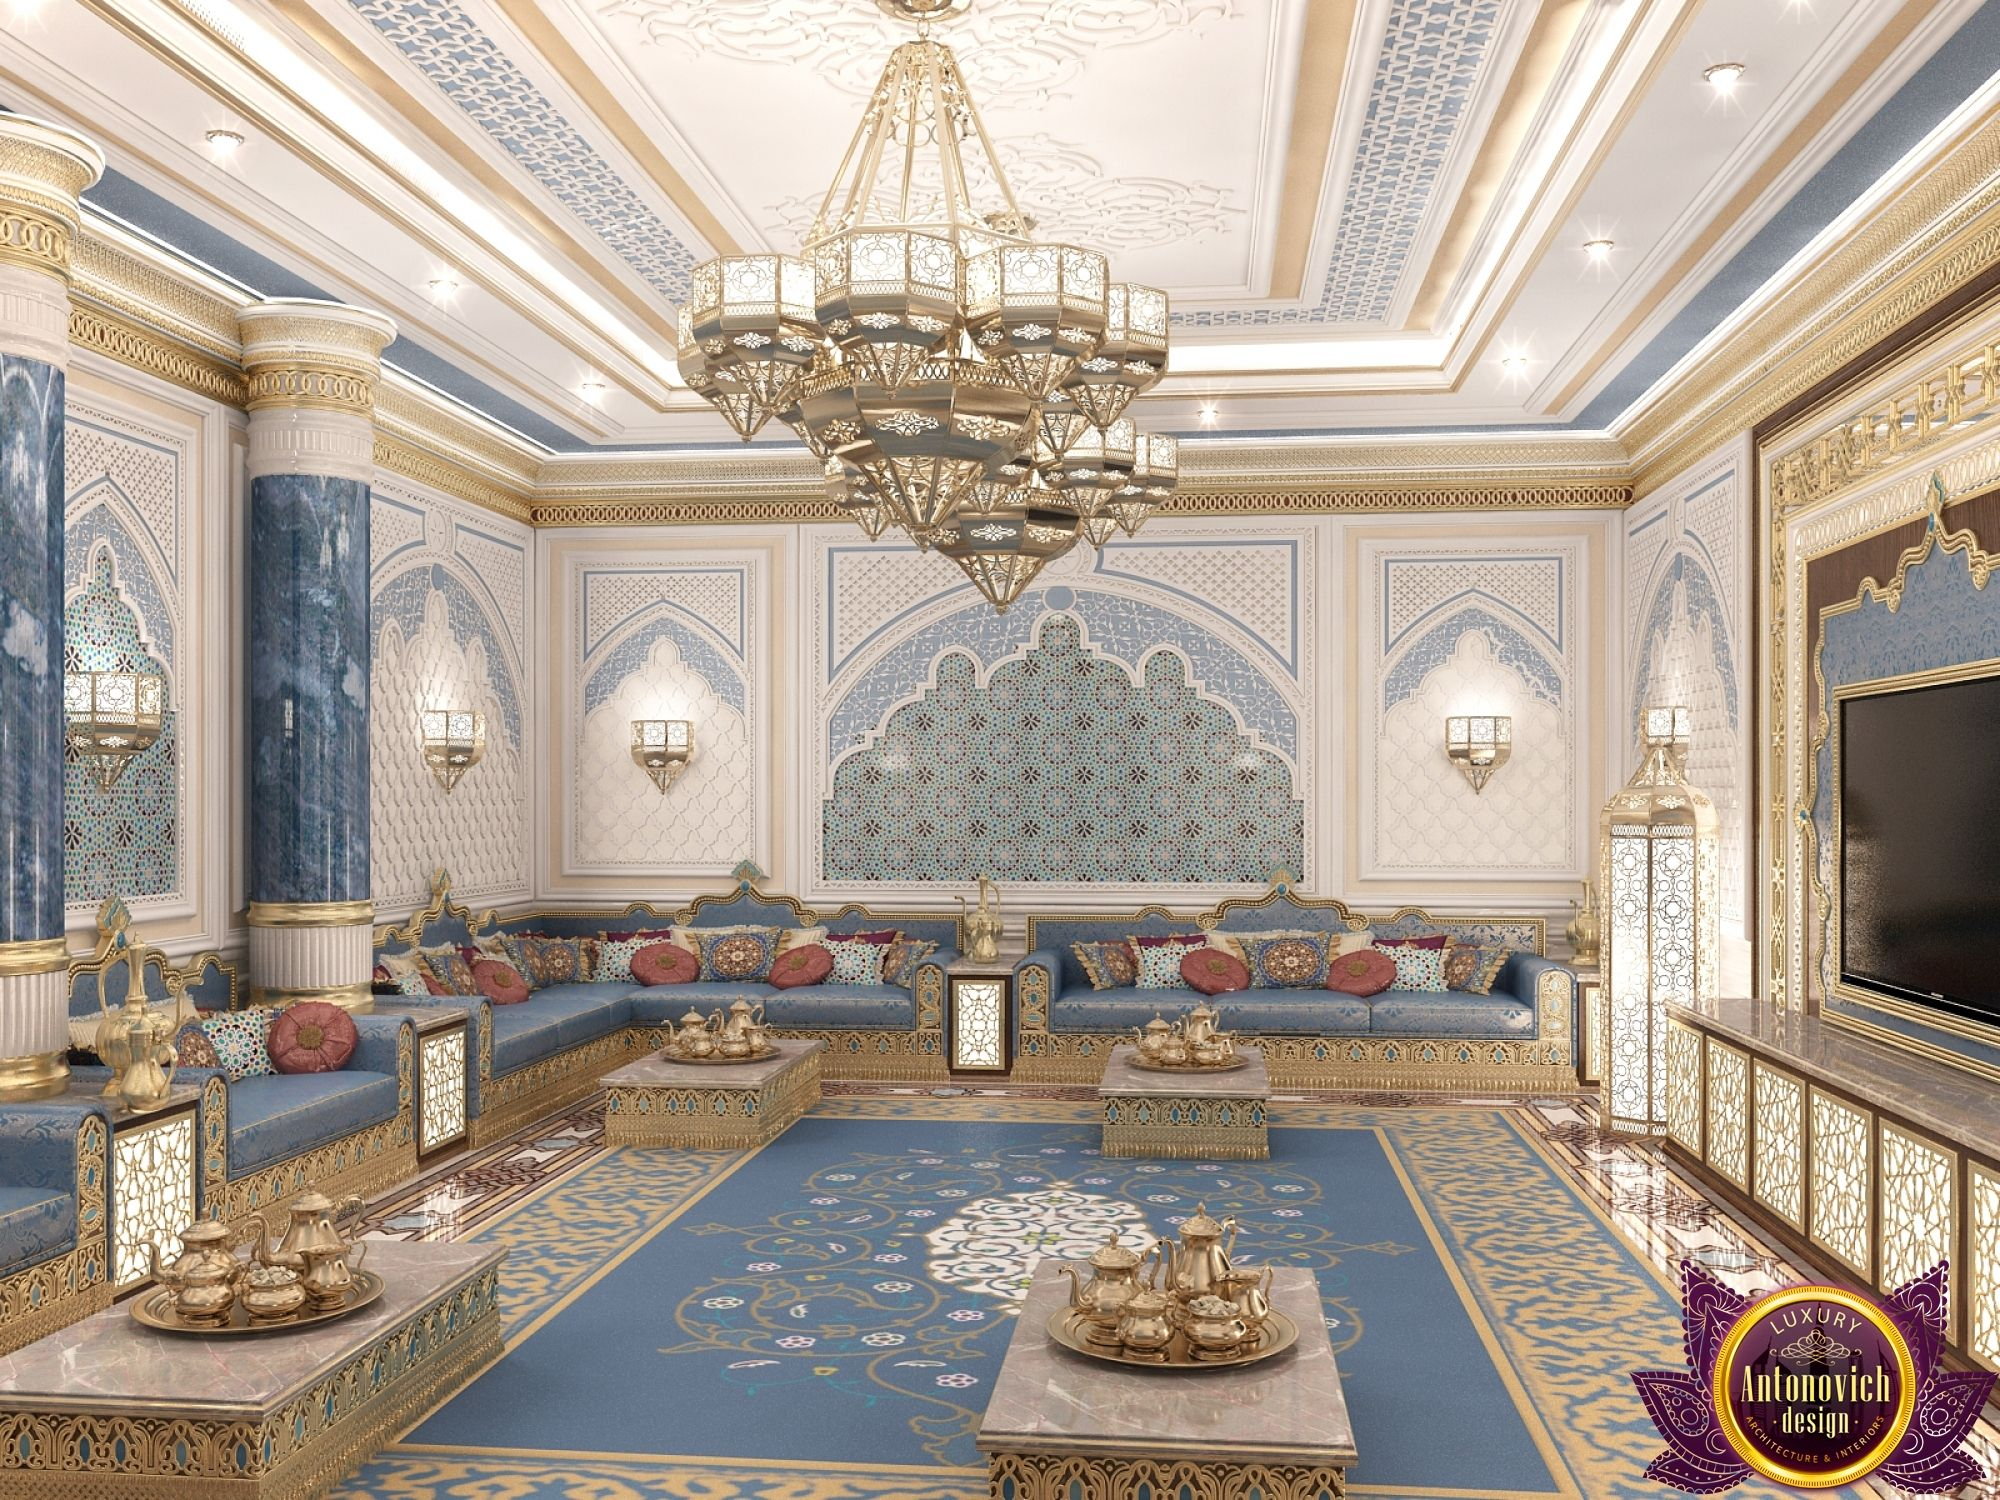 Majlis Interior Design In Dubai Luxury Arabic Photo 3